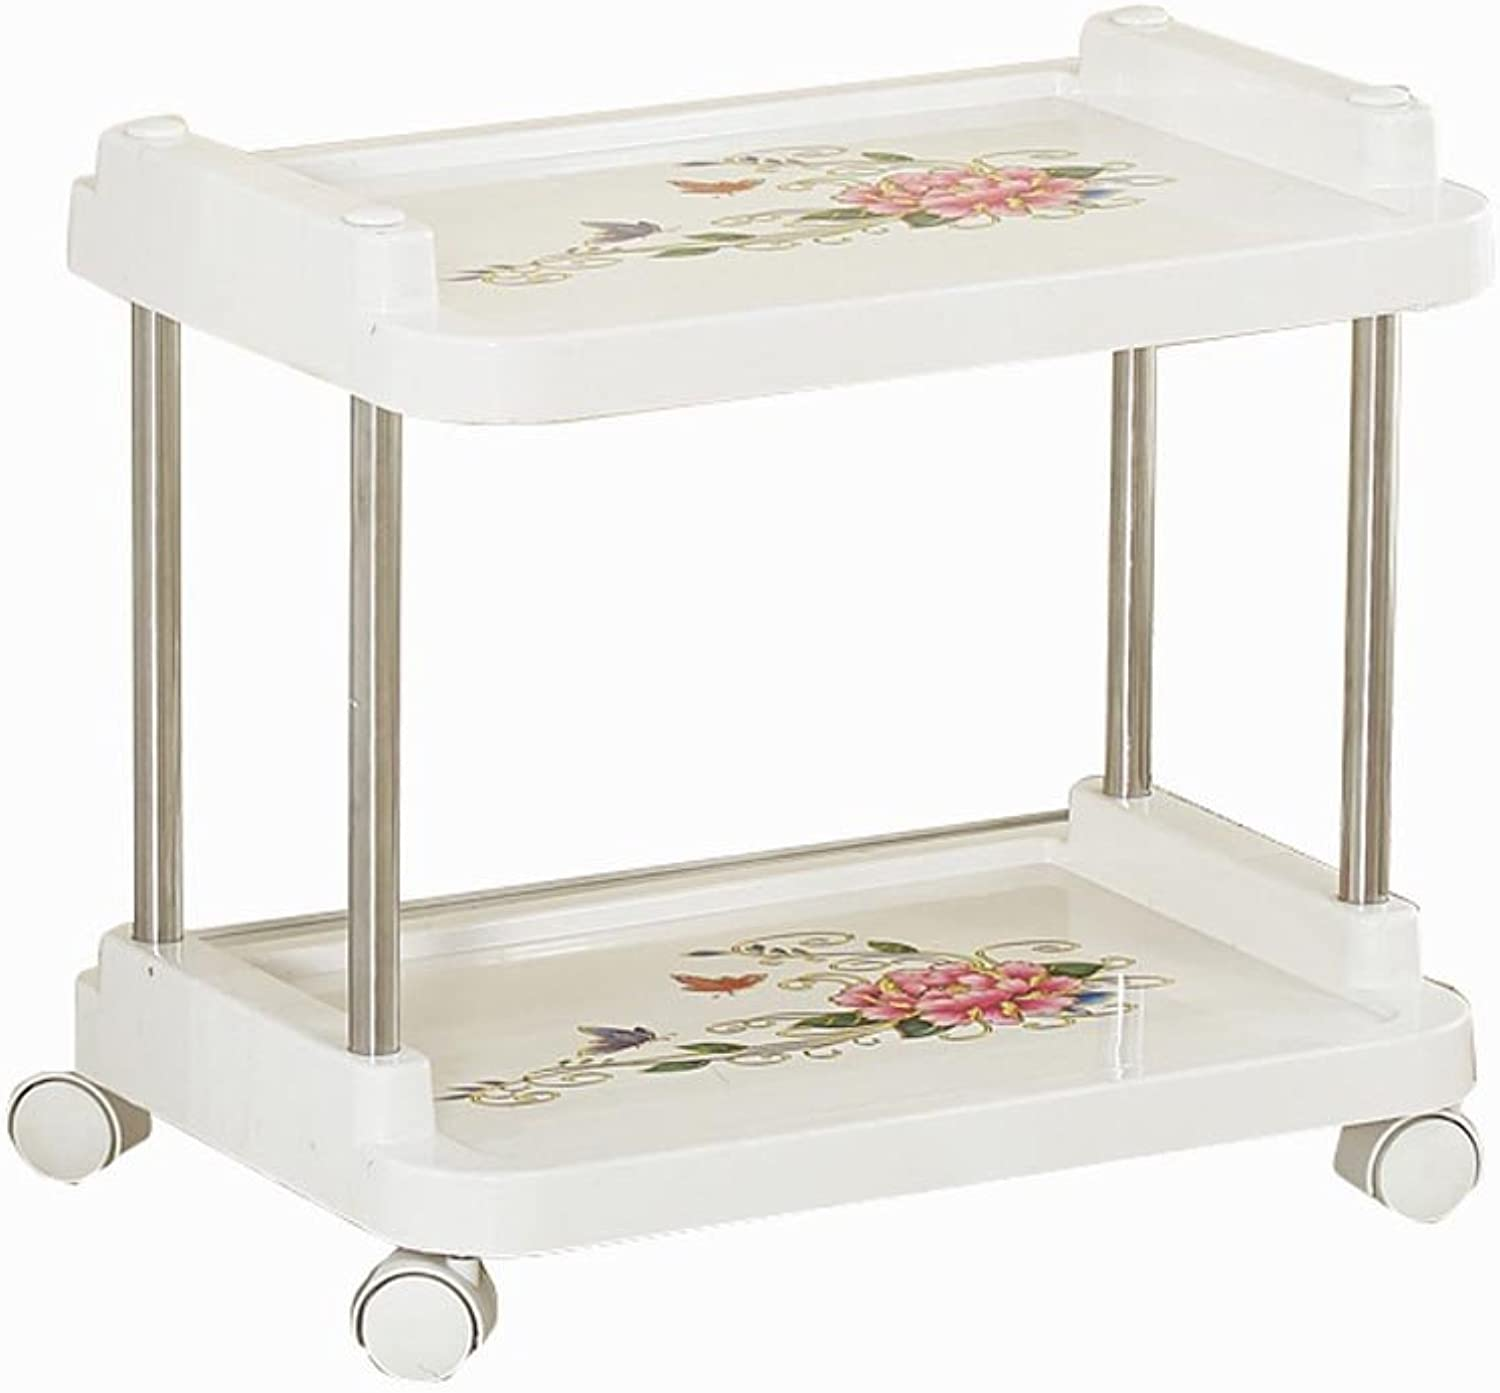 JU FU Cart Storage Rack Trolley-Multifunctional Beauty Car Hair Salon Trolley Home Kitchen Bathroom Tool Car Shelf @@ (color   White, Size   46  31  45CM)